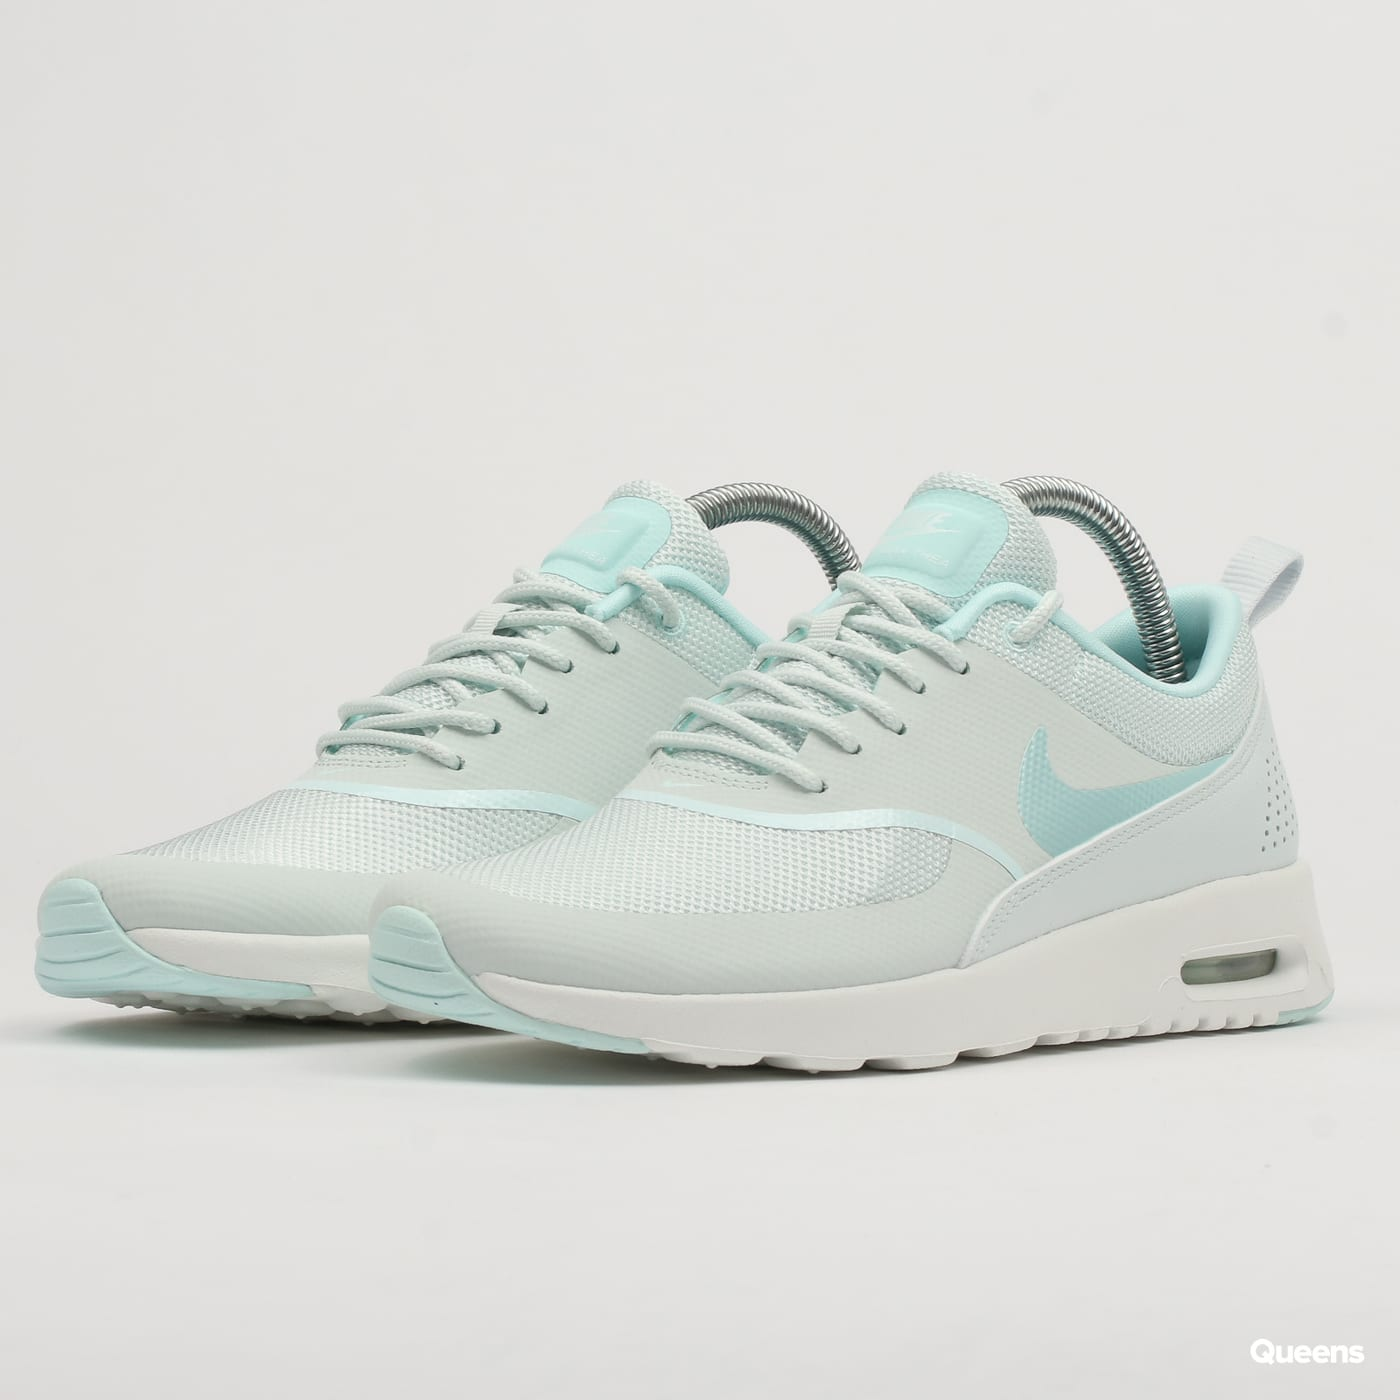 3b838be938 Nike WMNS Air Max Thea ghost aqua / teal tint (599409-421) – Queens 💚